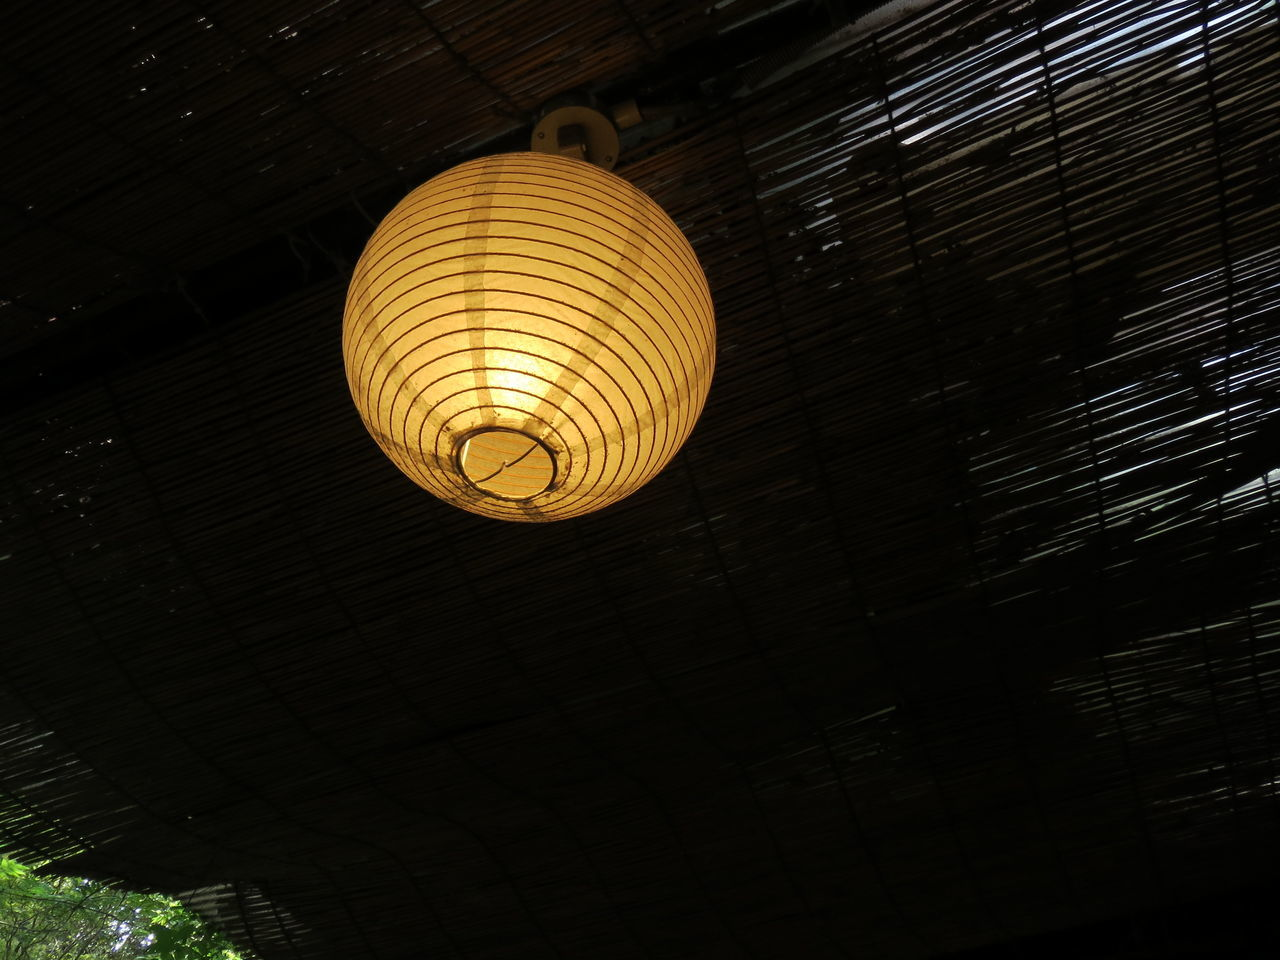 lighting equipment, low angle view, hanging, illuminated, indoors, electricity, no people, night, lantern